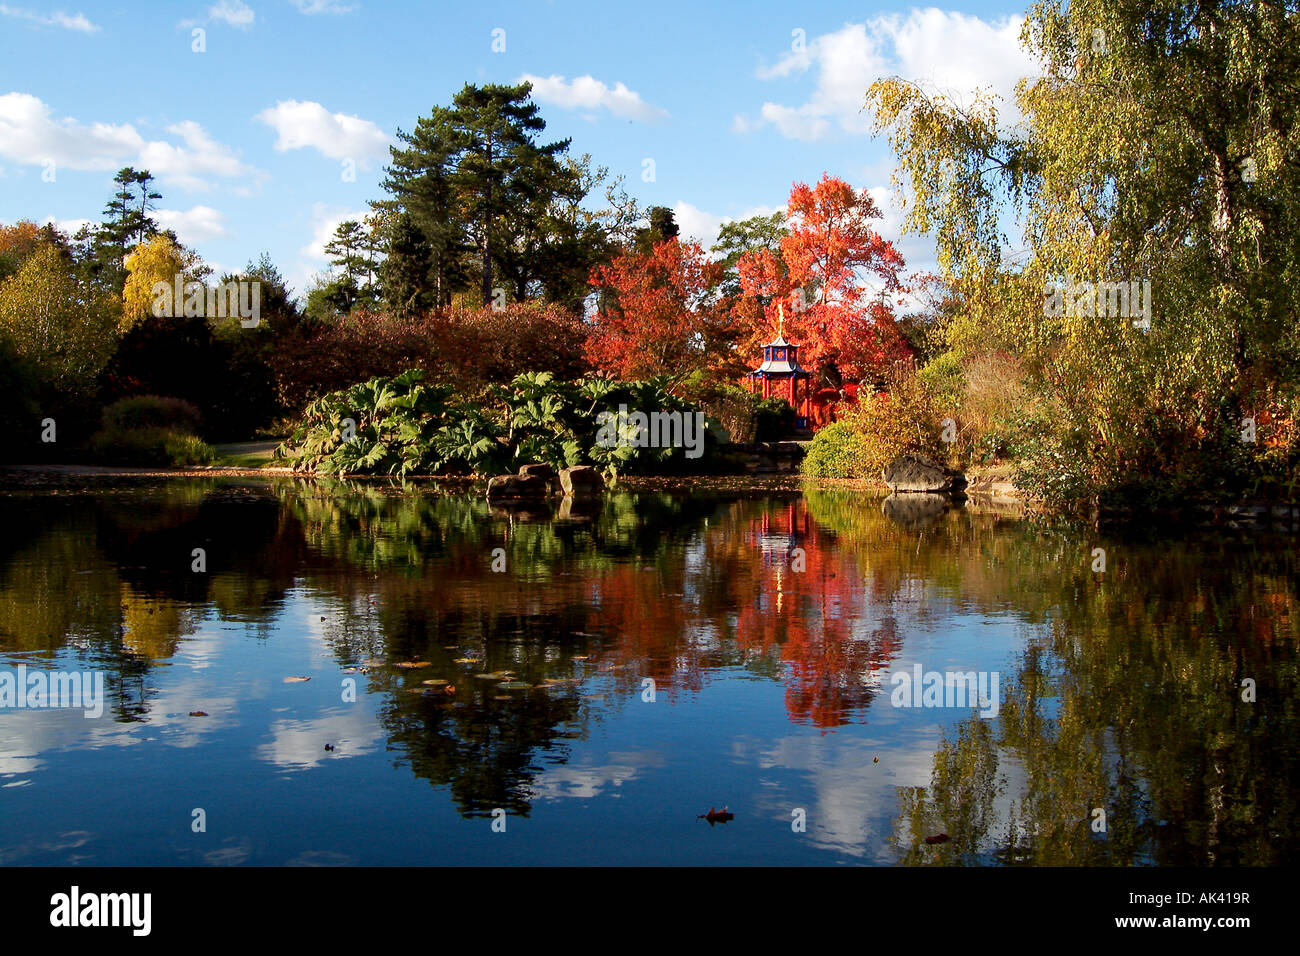 Japanese Water Gardens Cliveden Berkshire United Kingdom